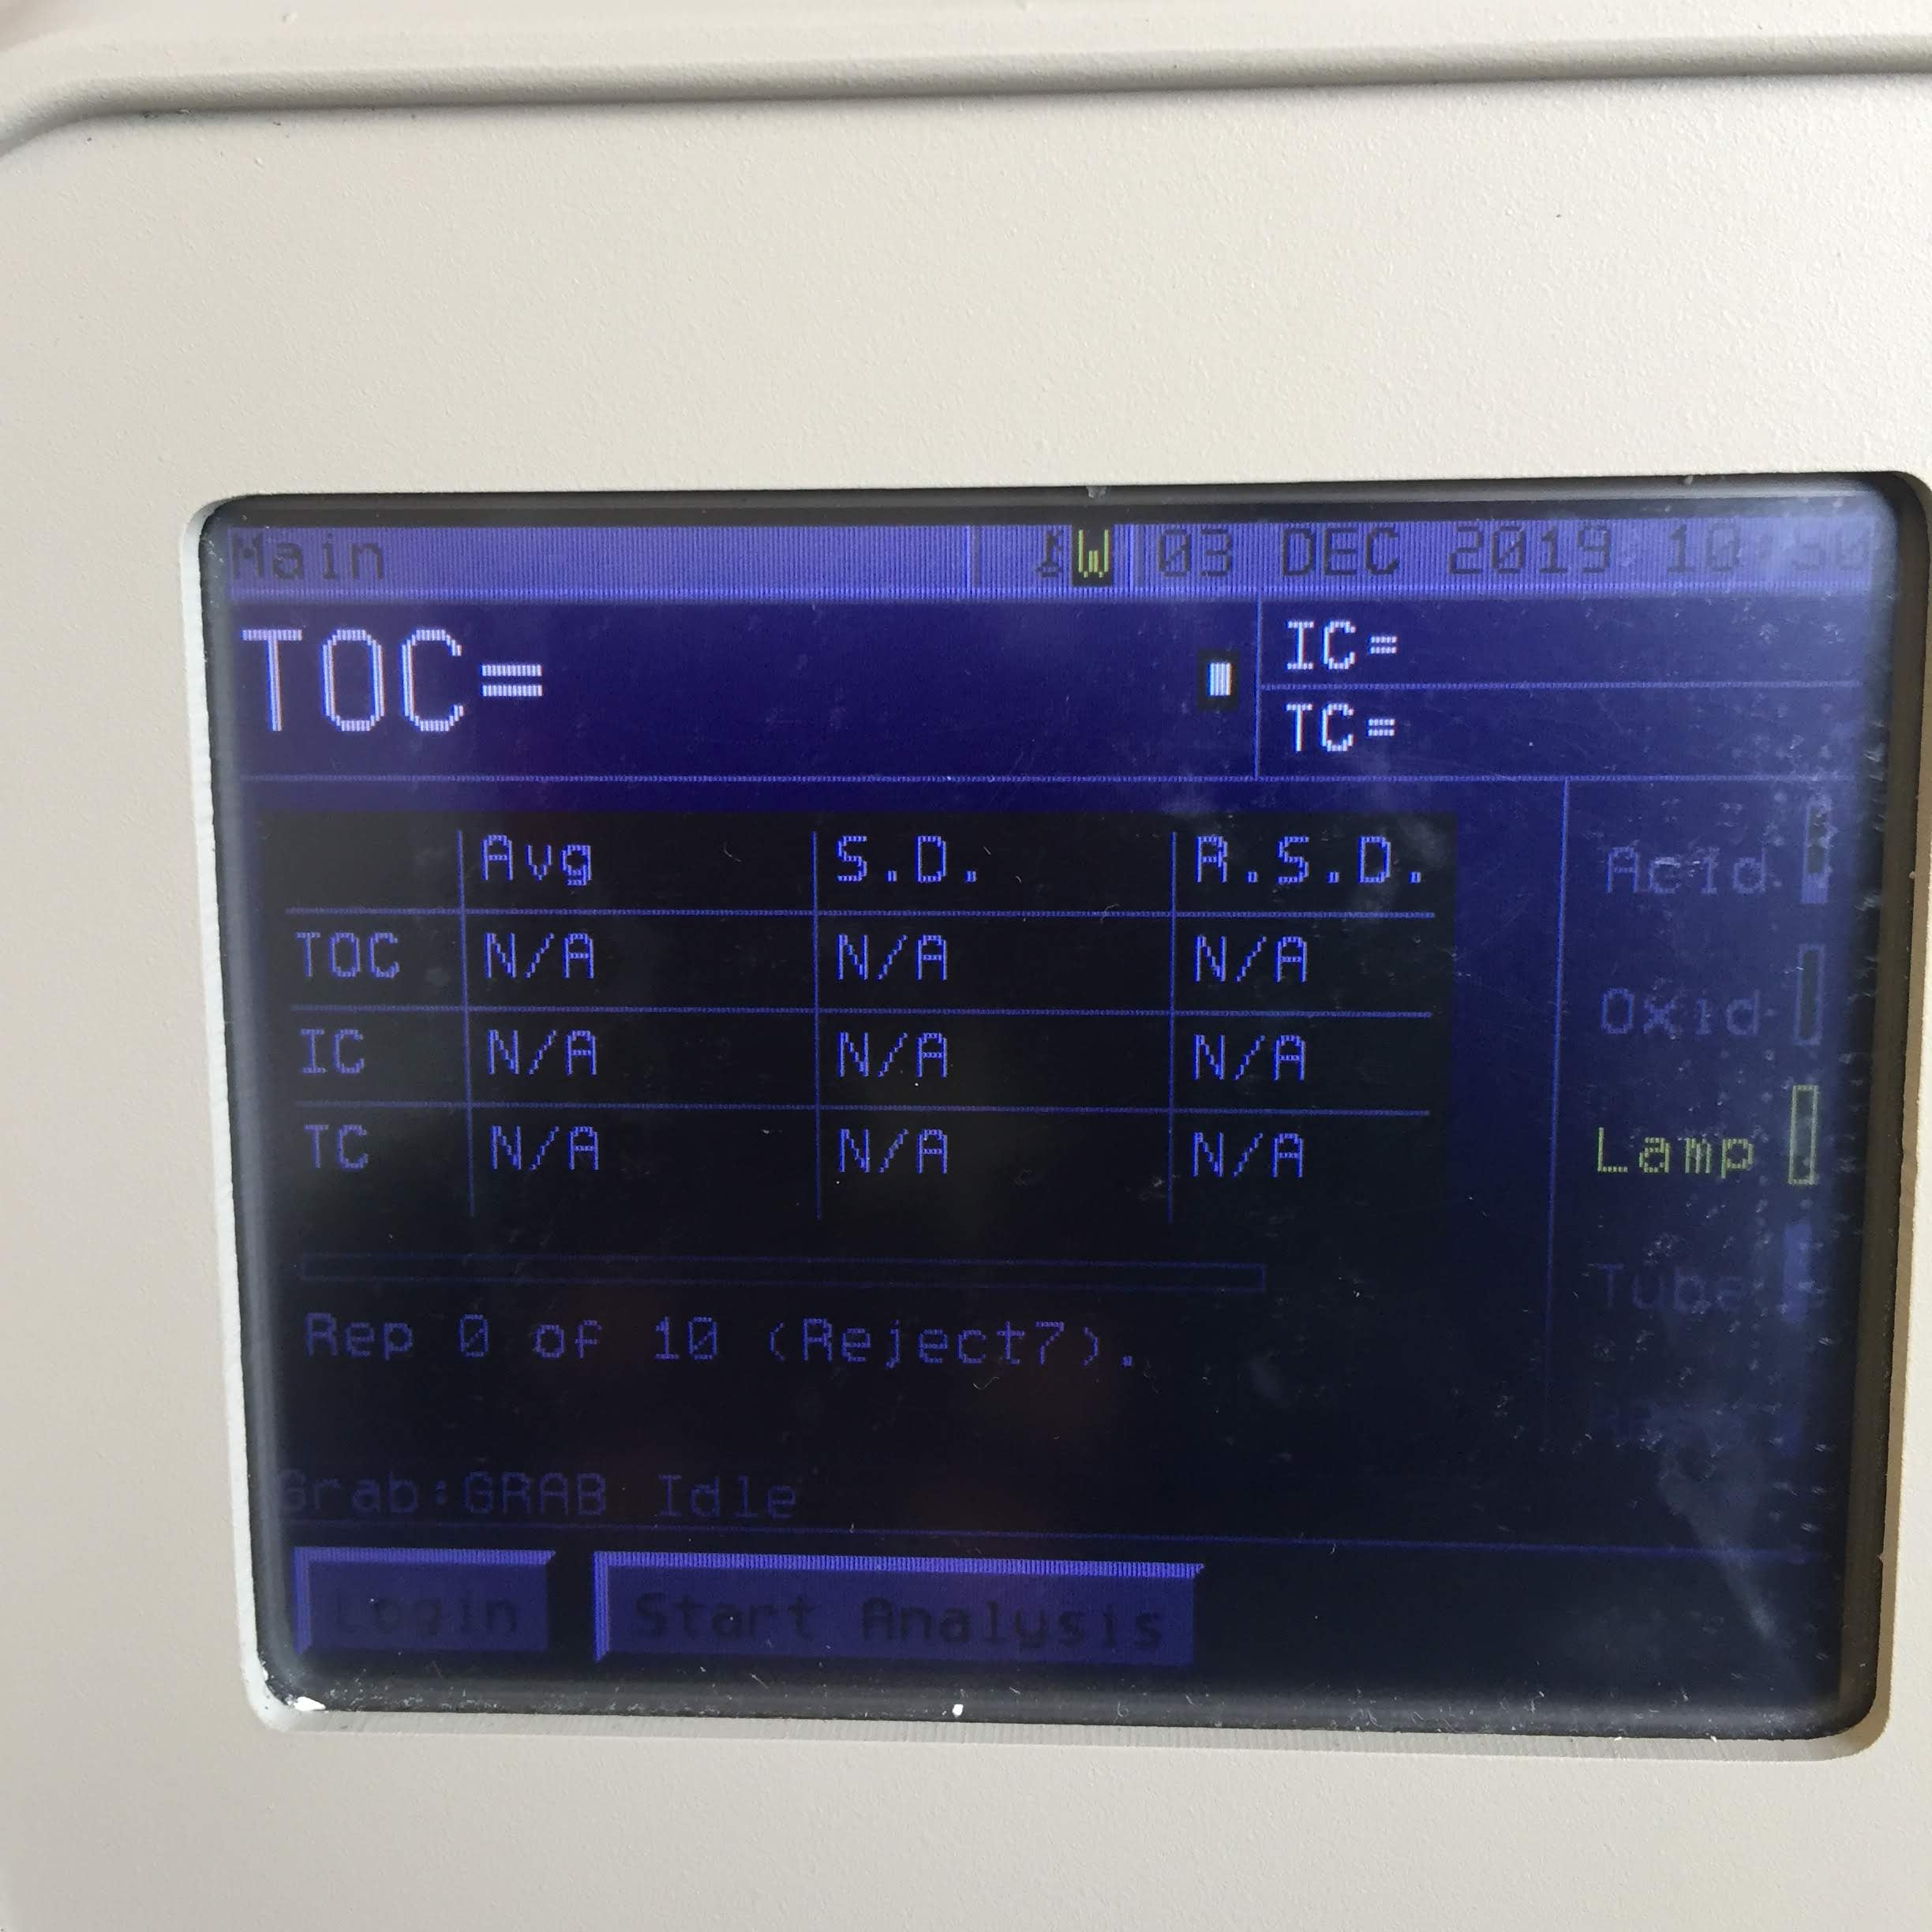 GE Healthcare Sievers 900 Lab TOC Analyzer